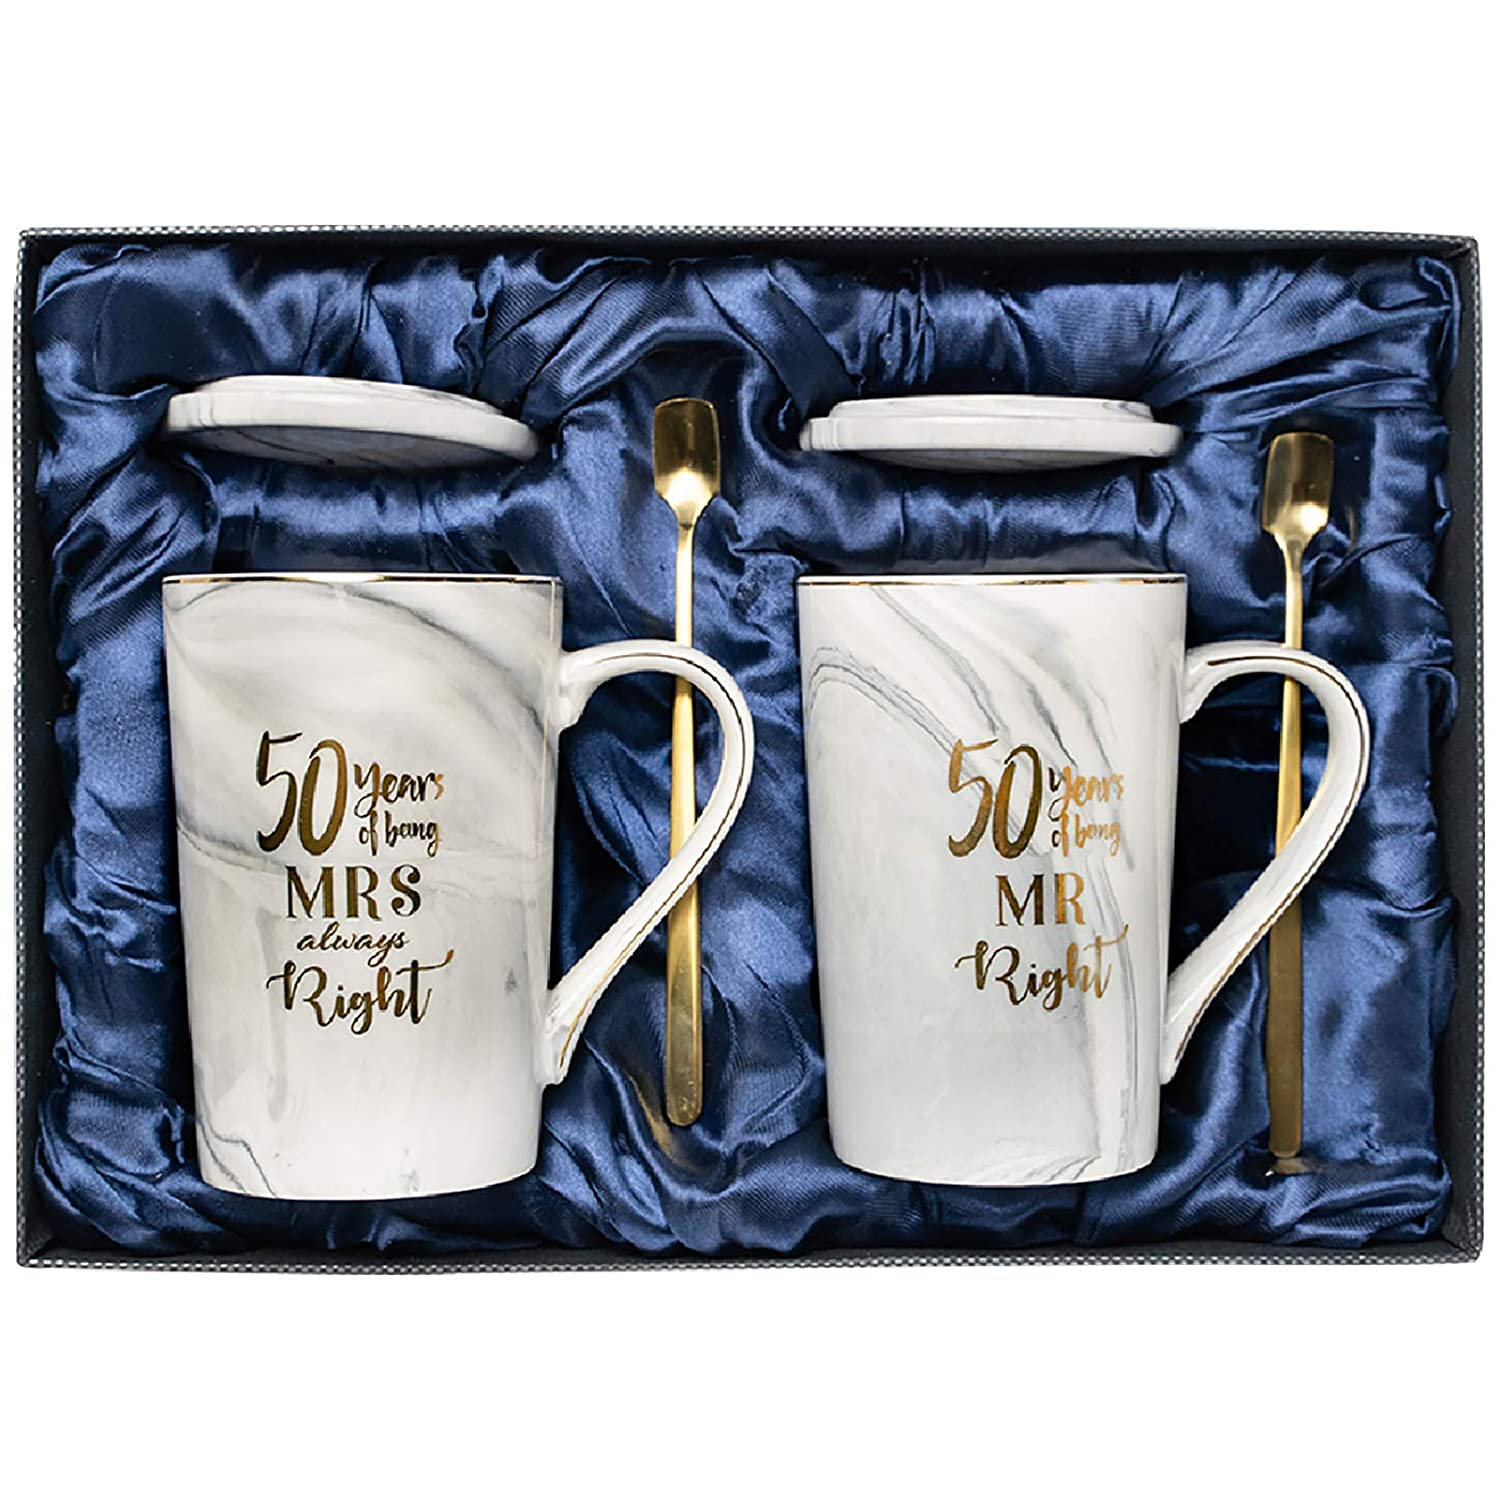 Buy 50th Anniversary Gifts For Couple 50th Wedding Anniversary Gifts Golden Anniversary Gifts For Couples Gifts For Grandparents Gifts For 50th Anniversary Grandpa Grandma Online At Low Prices In India